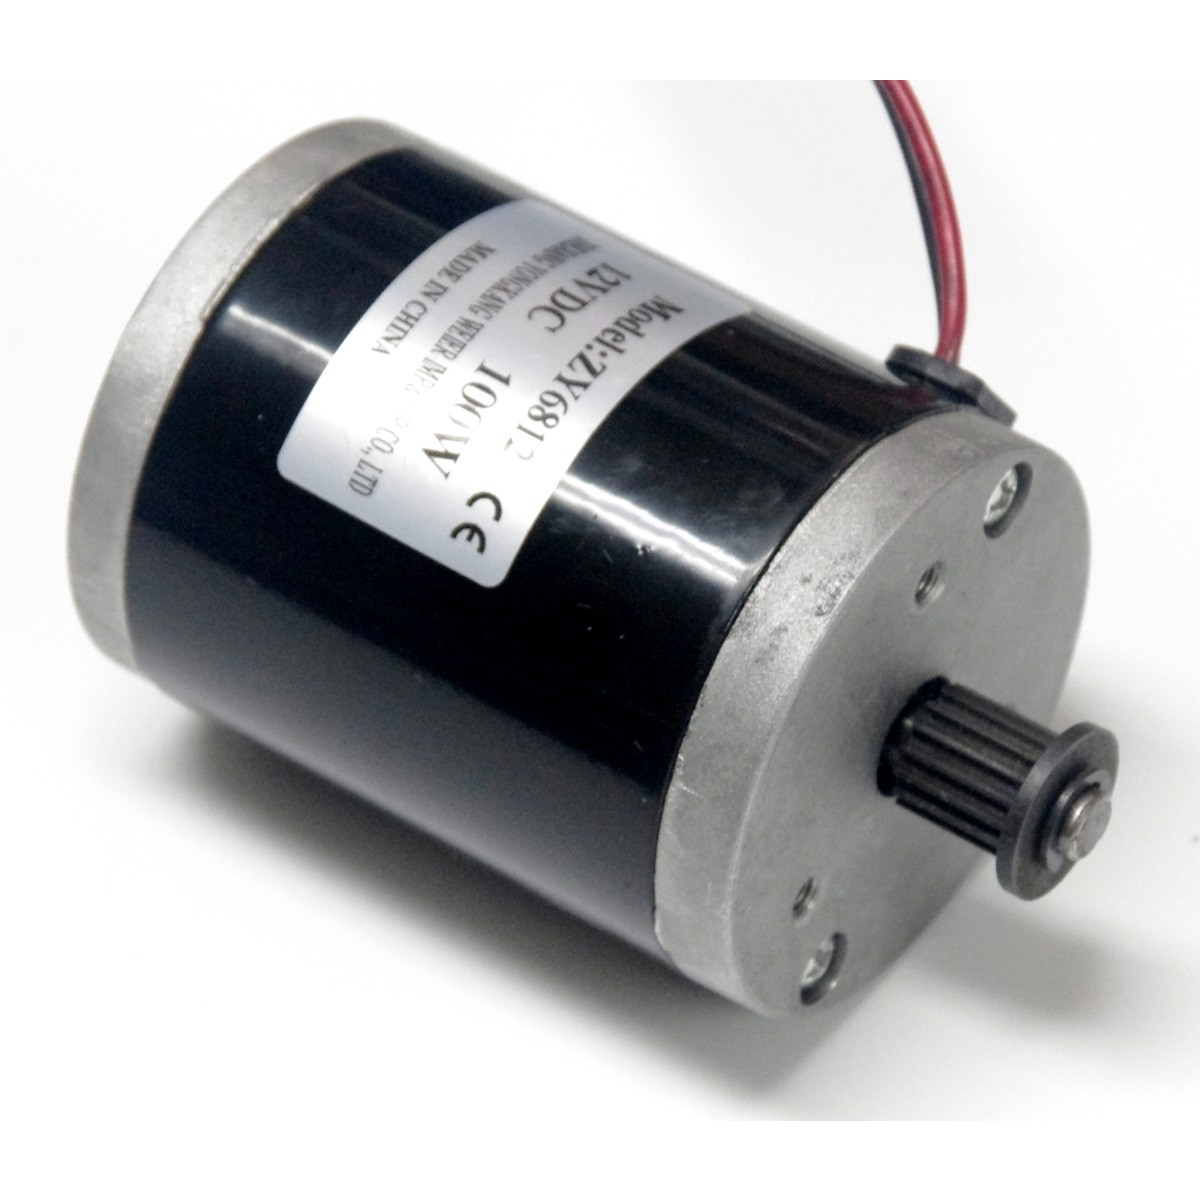 12v 100w Dc 12v 100w 2750 Rpm Electric Motor Belt Drive Motor